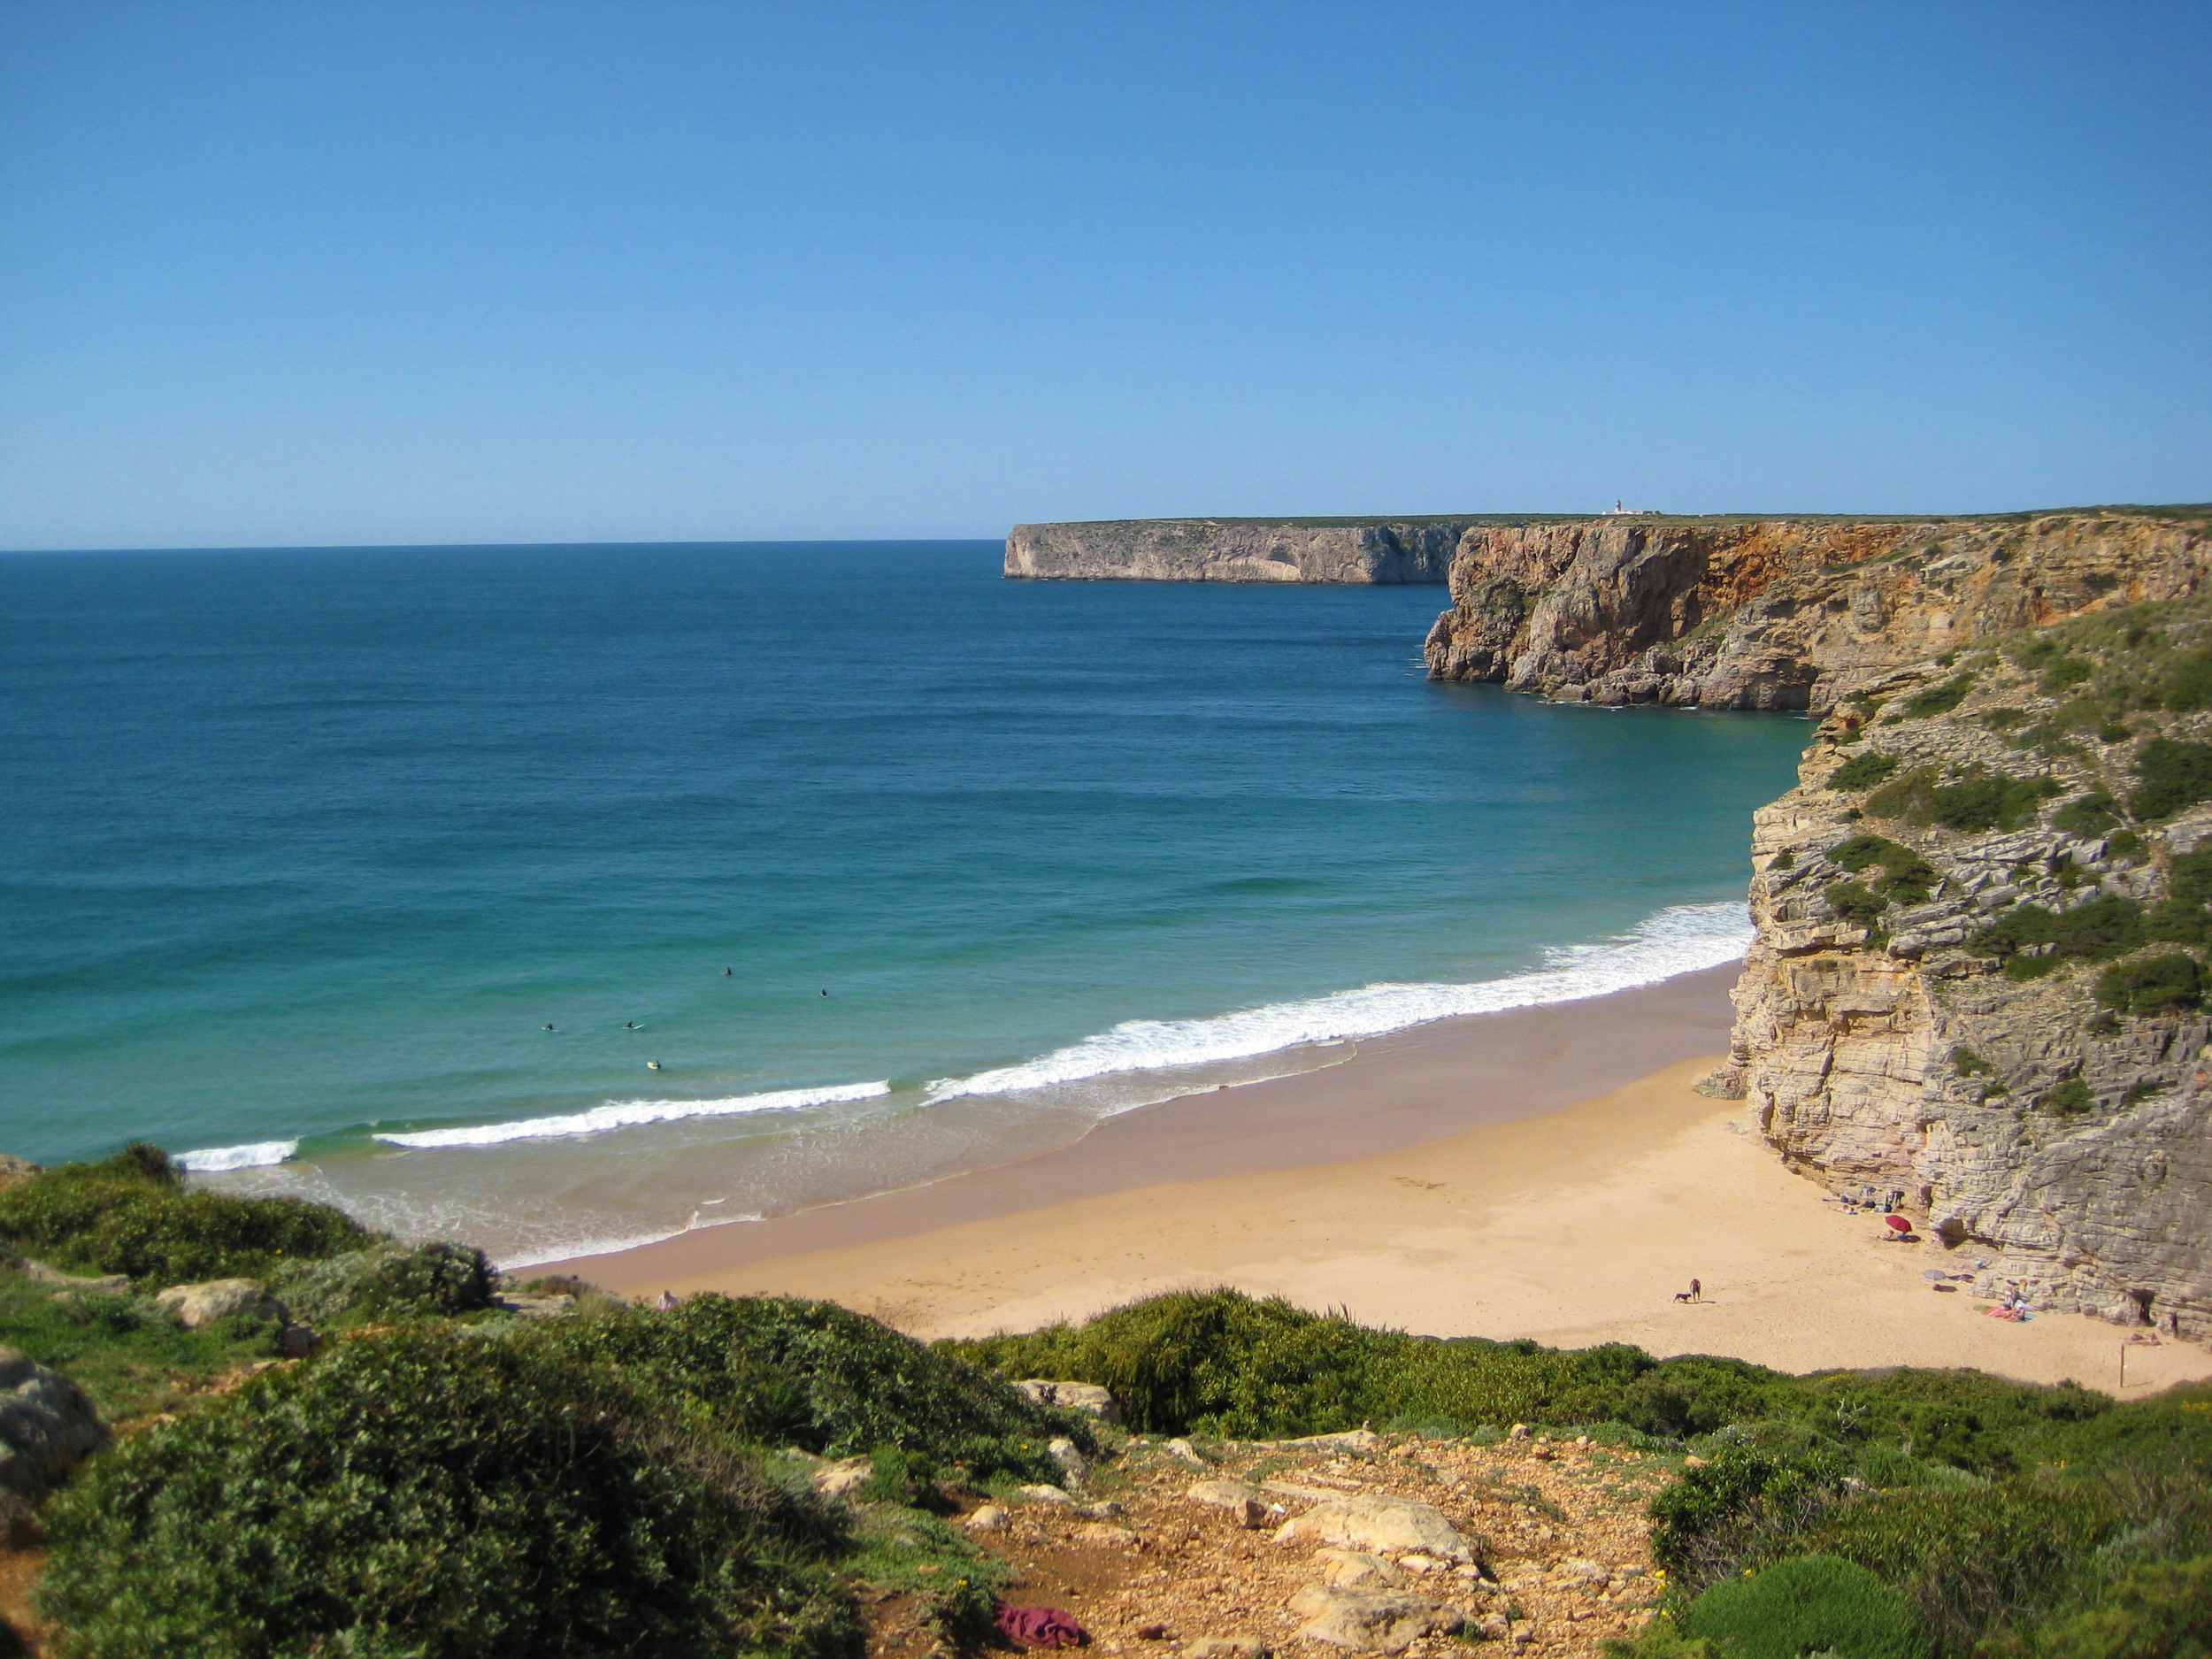 alue-optics-portugal-beach.jpg